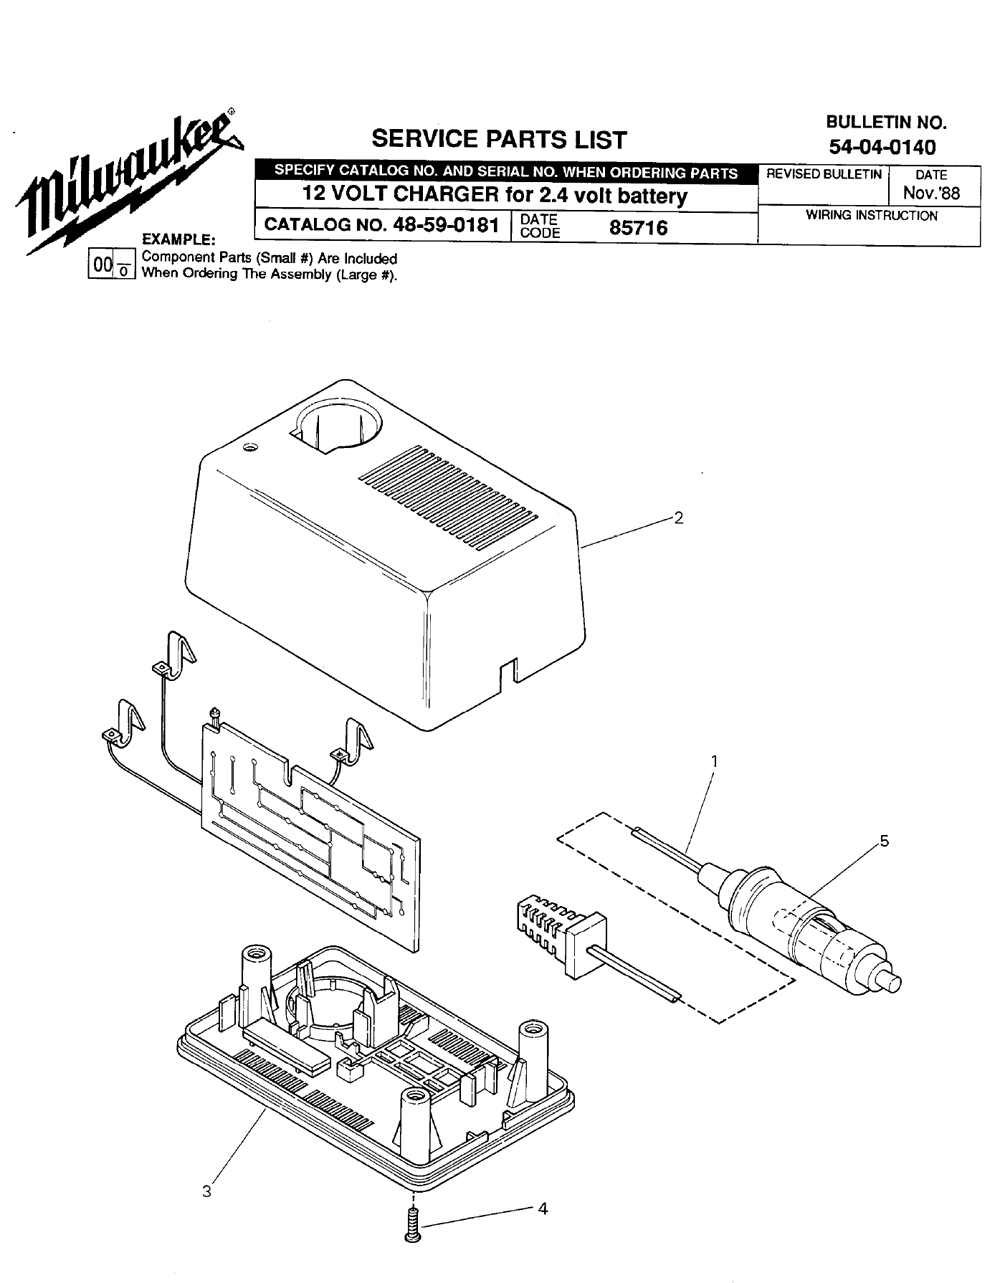 Buy Milwaukee 48-59-0181-(85716) 12 volt charger for 2.4